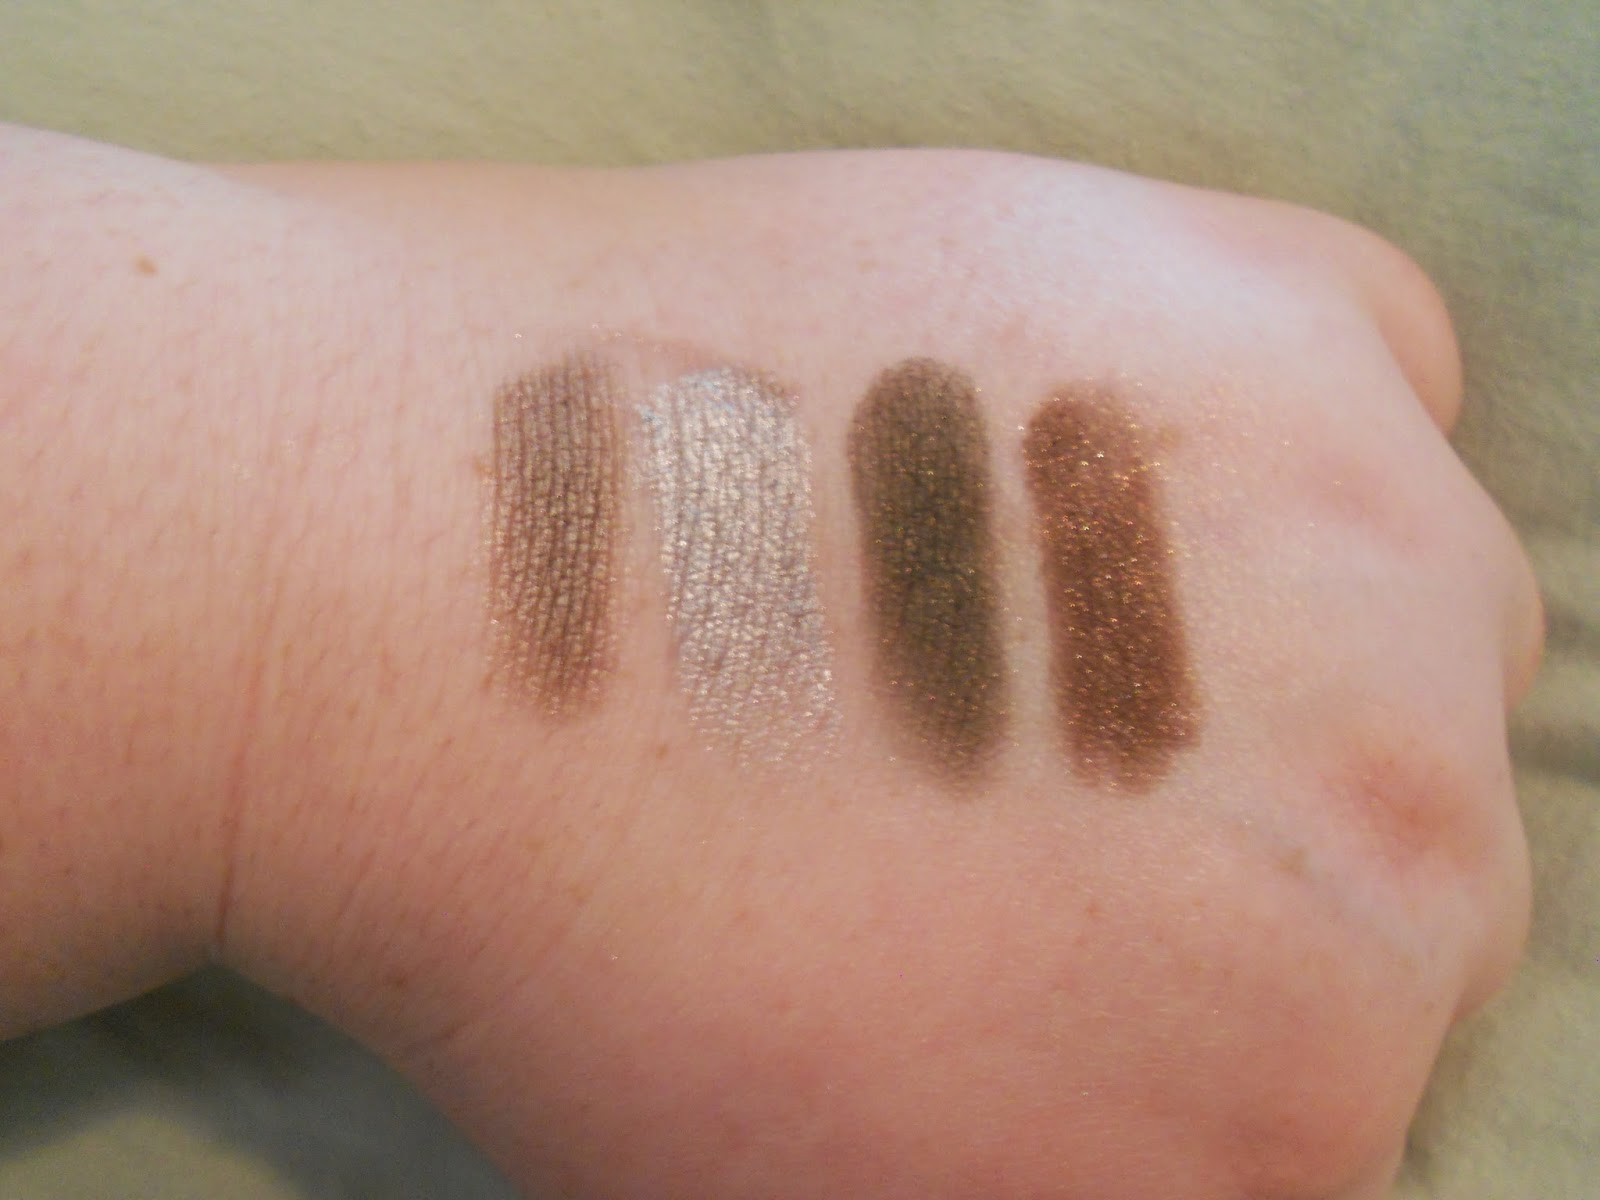 Lorac PRO Palette 2 Swatches - Chrome, Silver, Jade and Cocoa